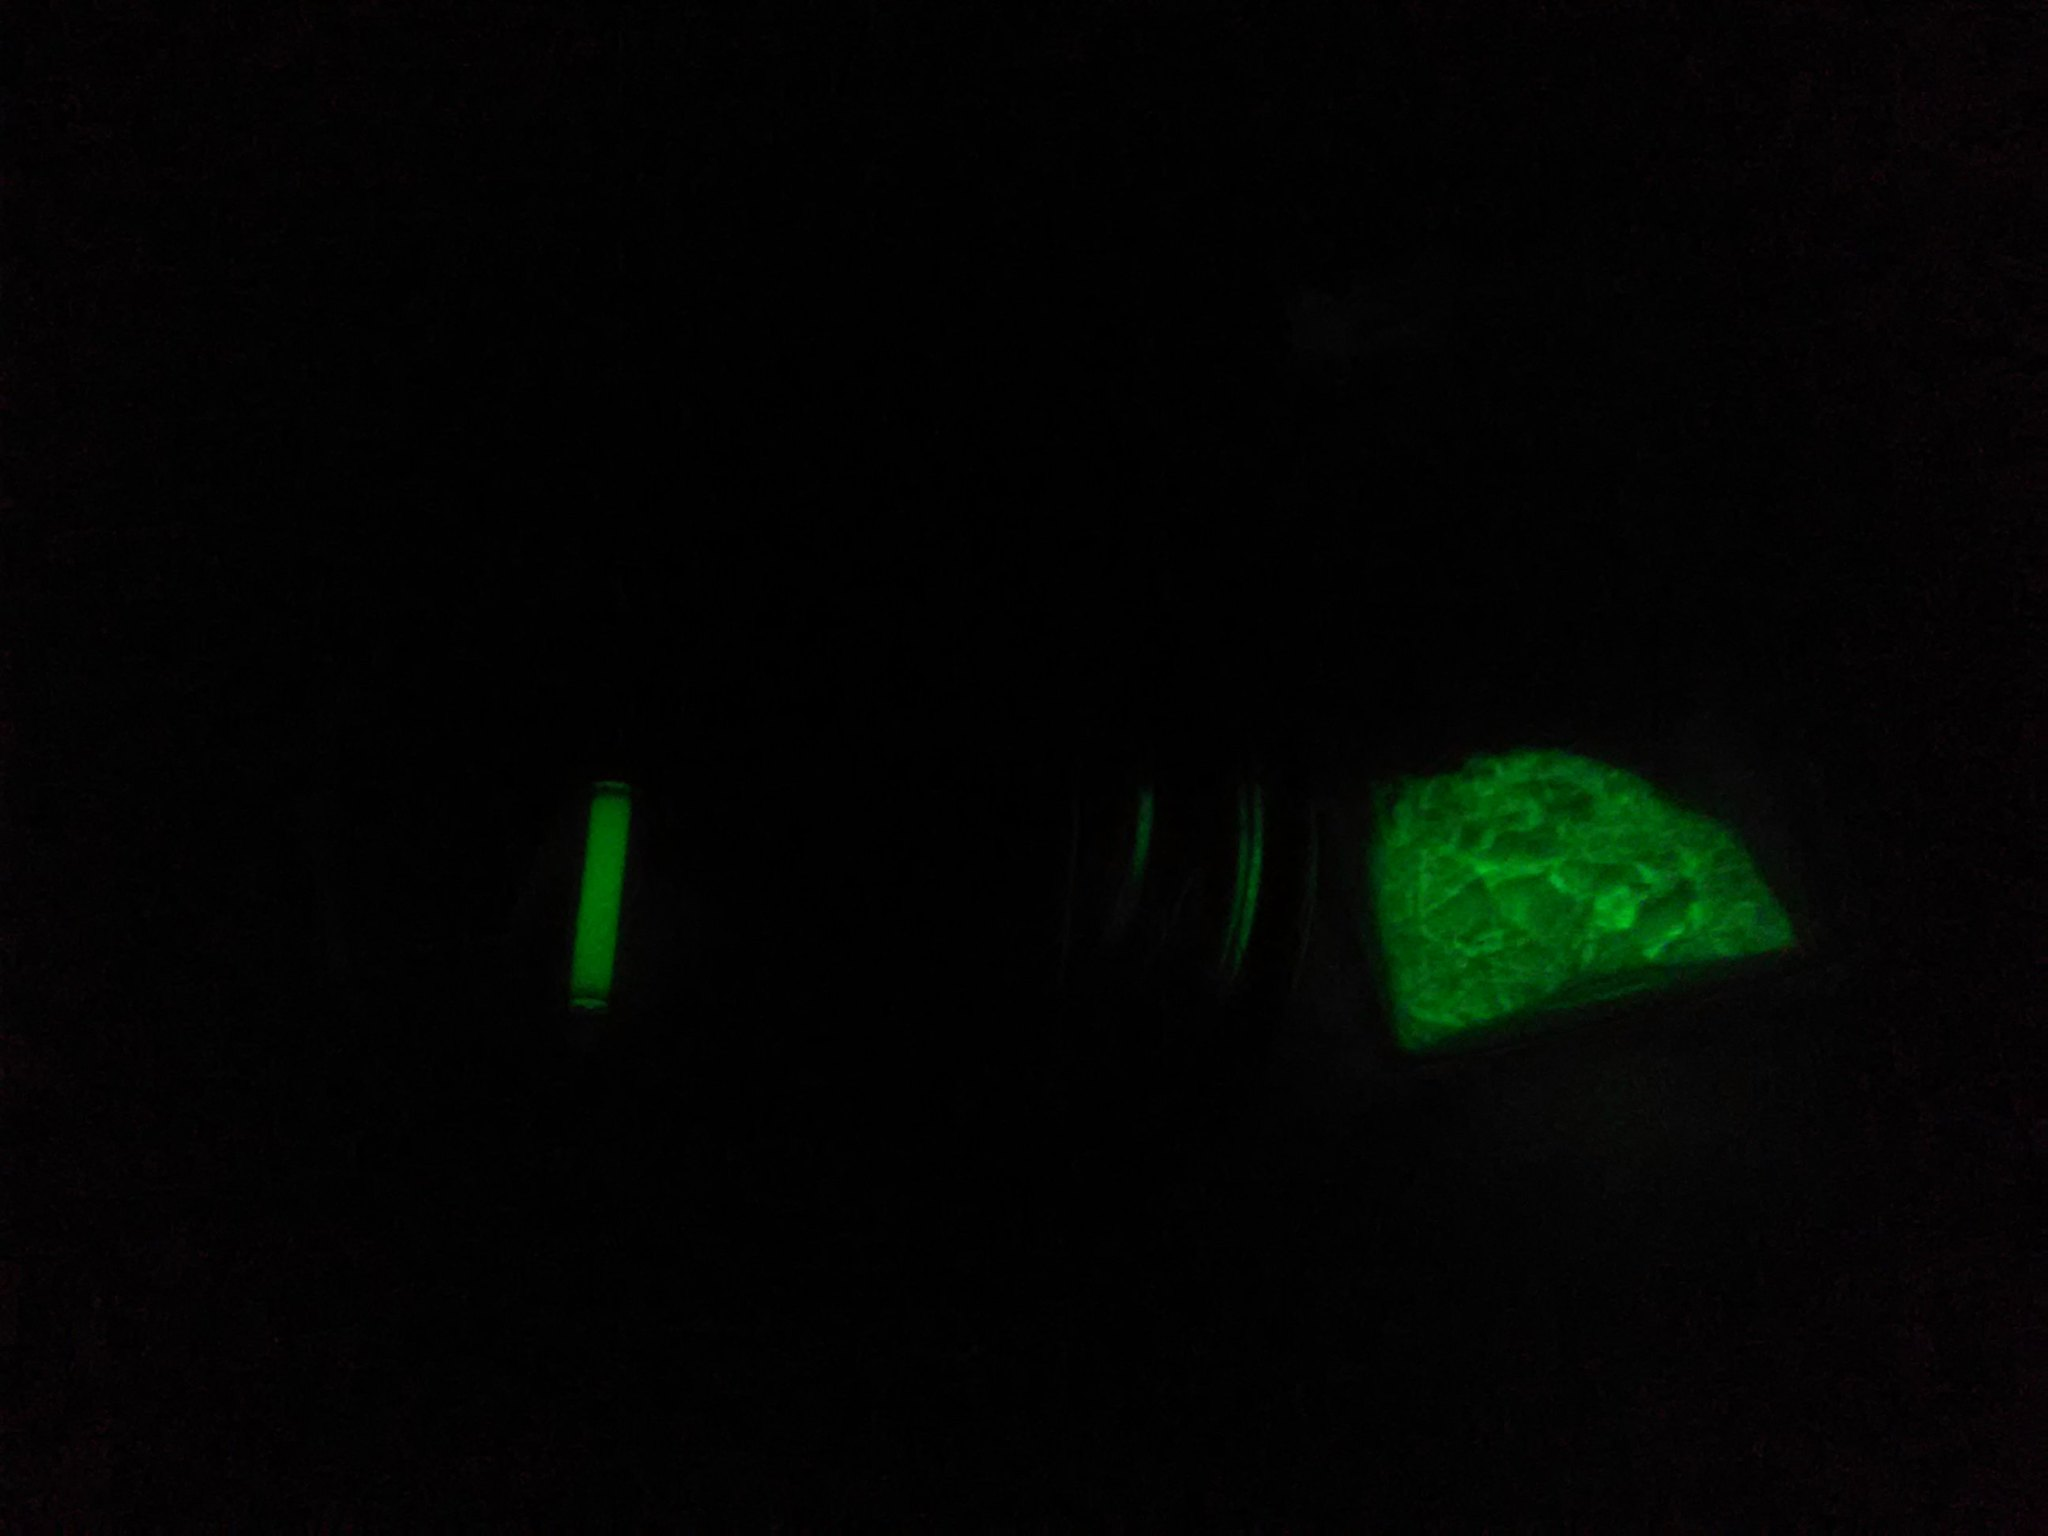 Tritium vial left glow powder right